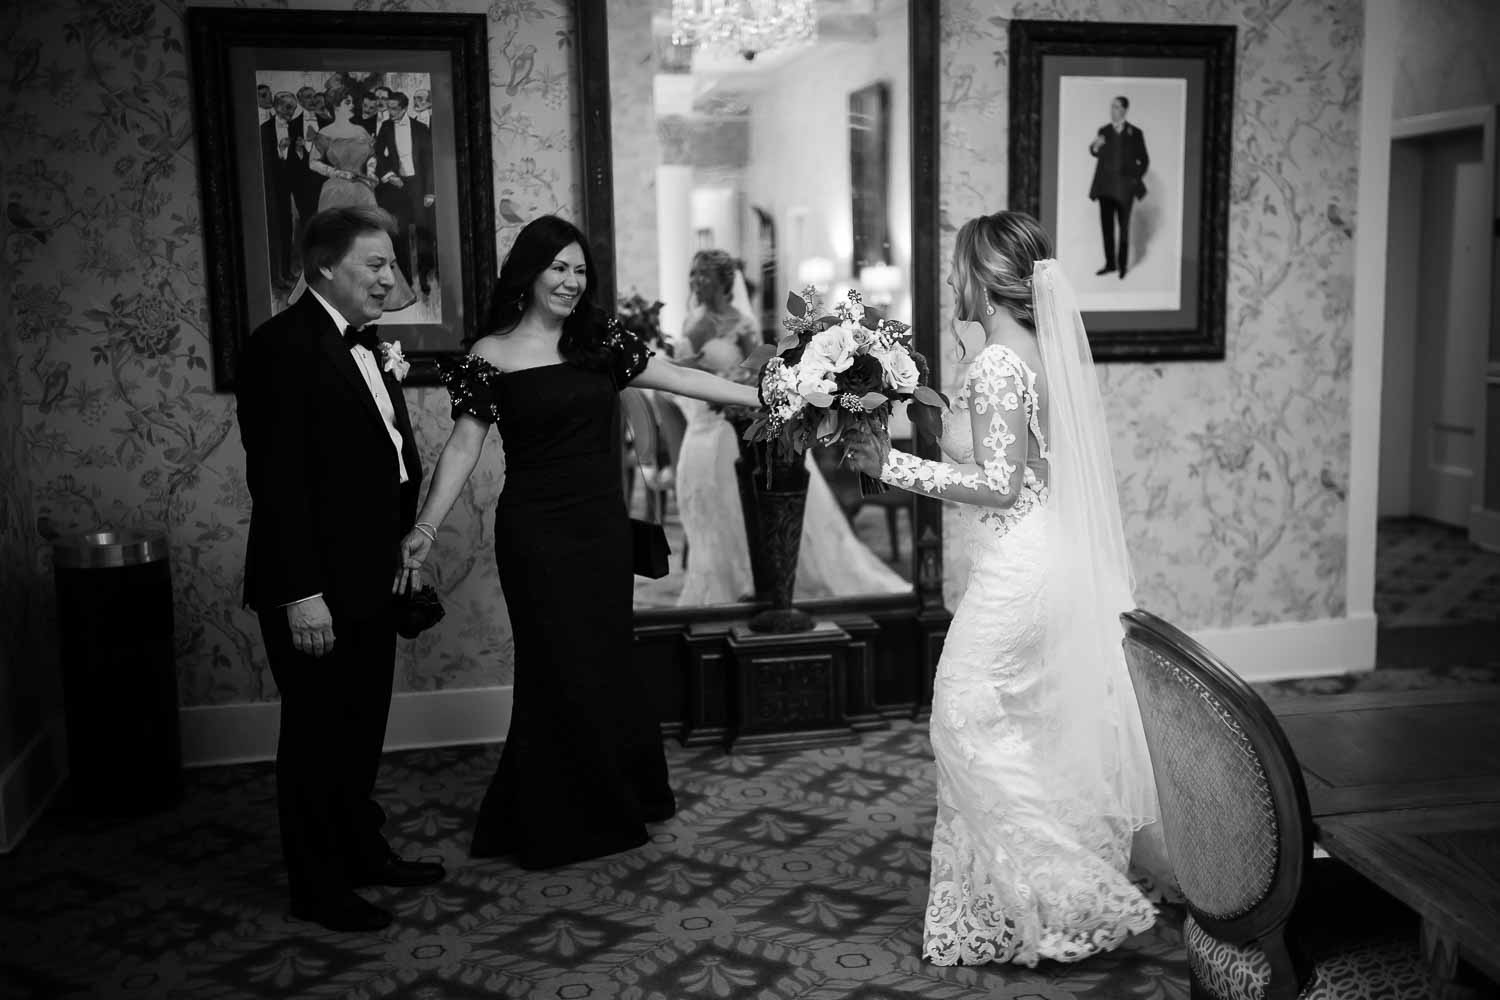 Menger Hotel Wedding Ceremony San Antonio Reception Grand BallroomSan Antonio -Leica photographer-Philip Thomas Photography